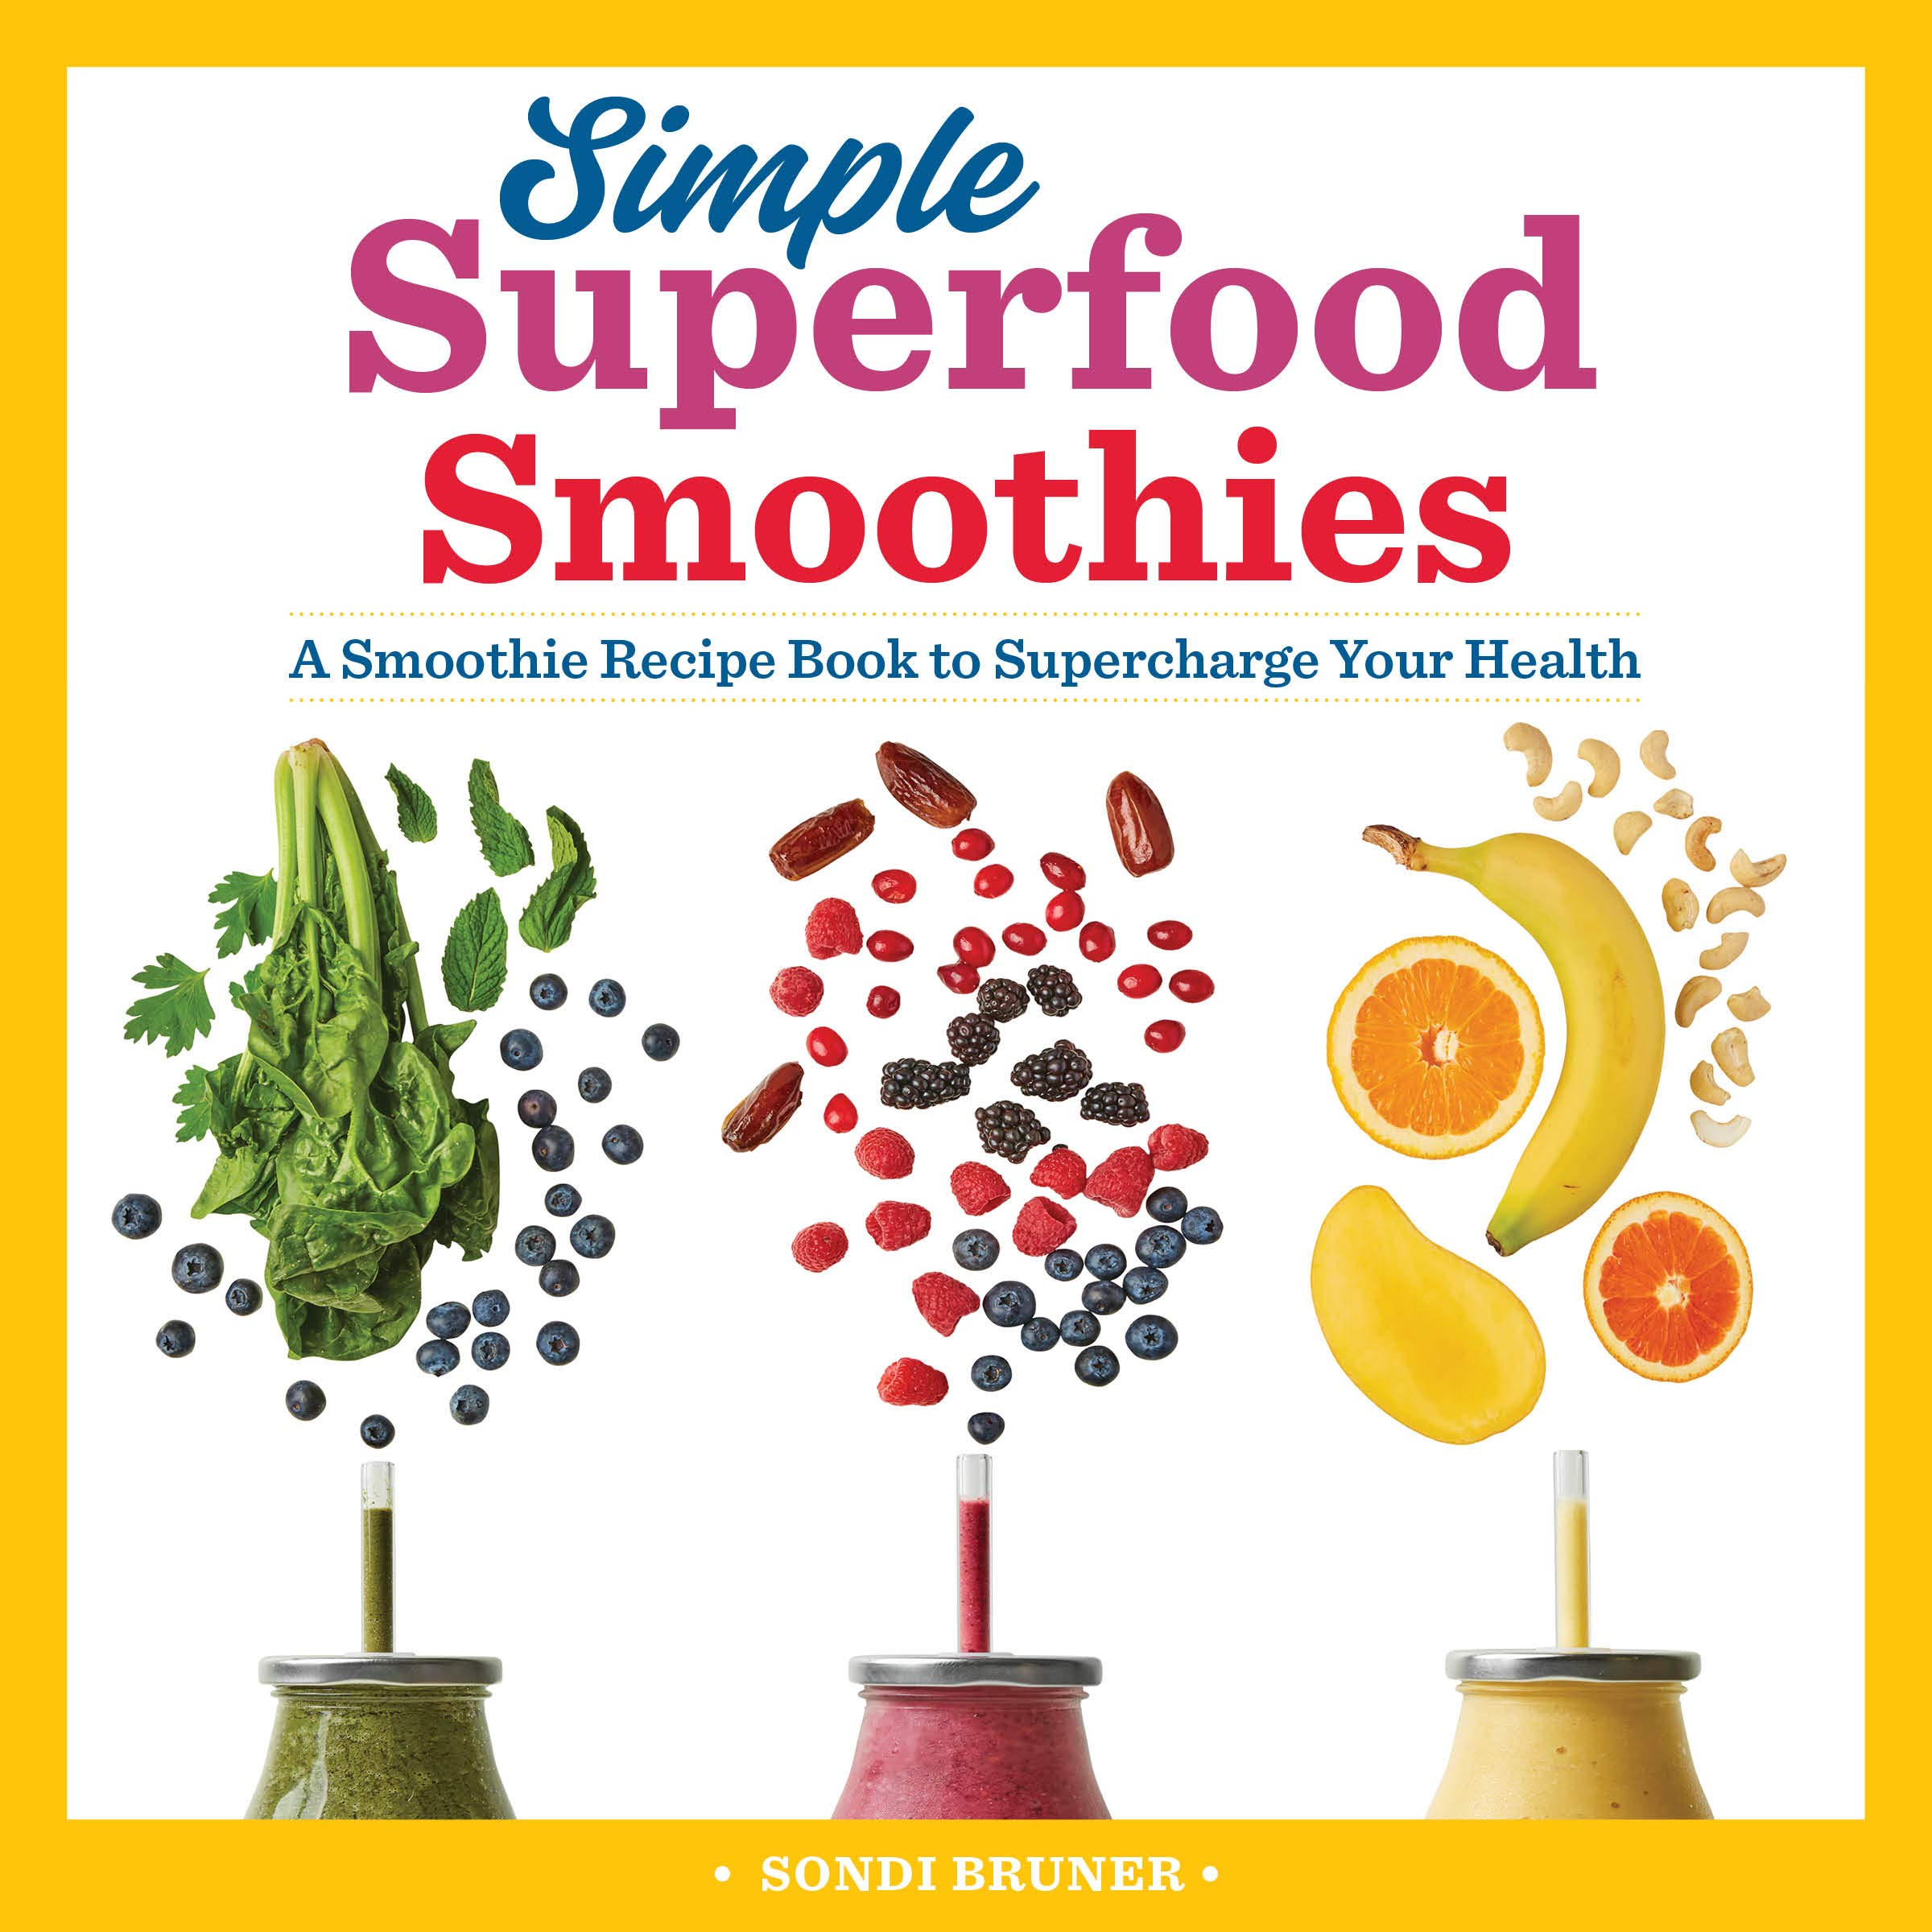 Simple Superfood Smoothies: A Smoothie Recipe Book to Supercharge Your Health 1